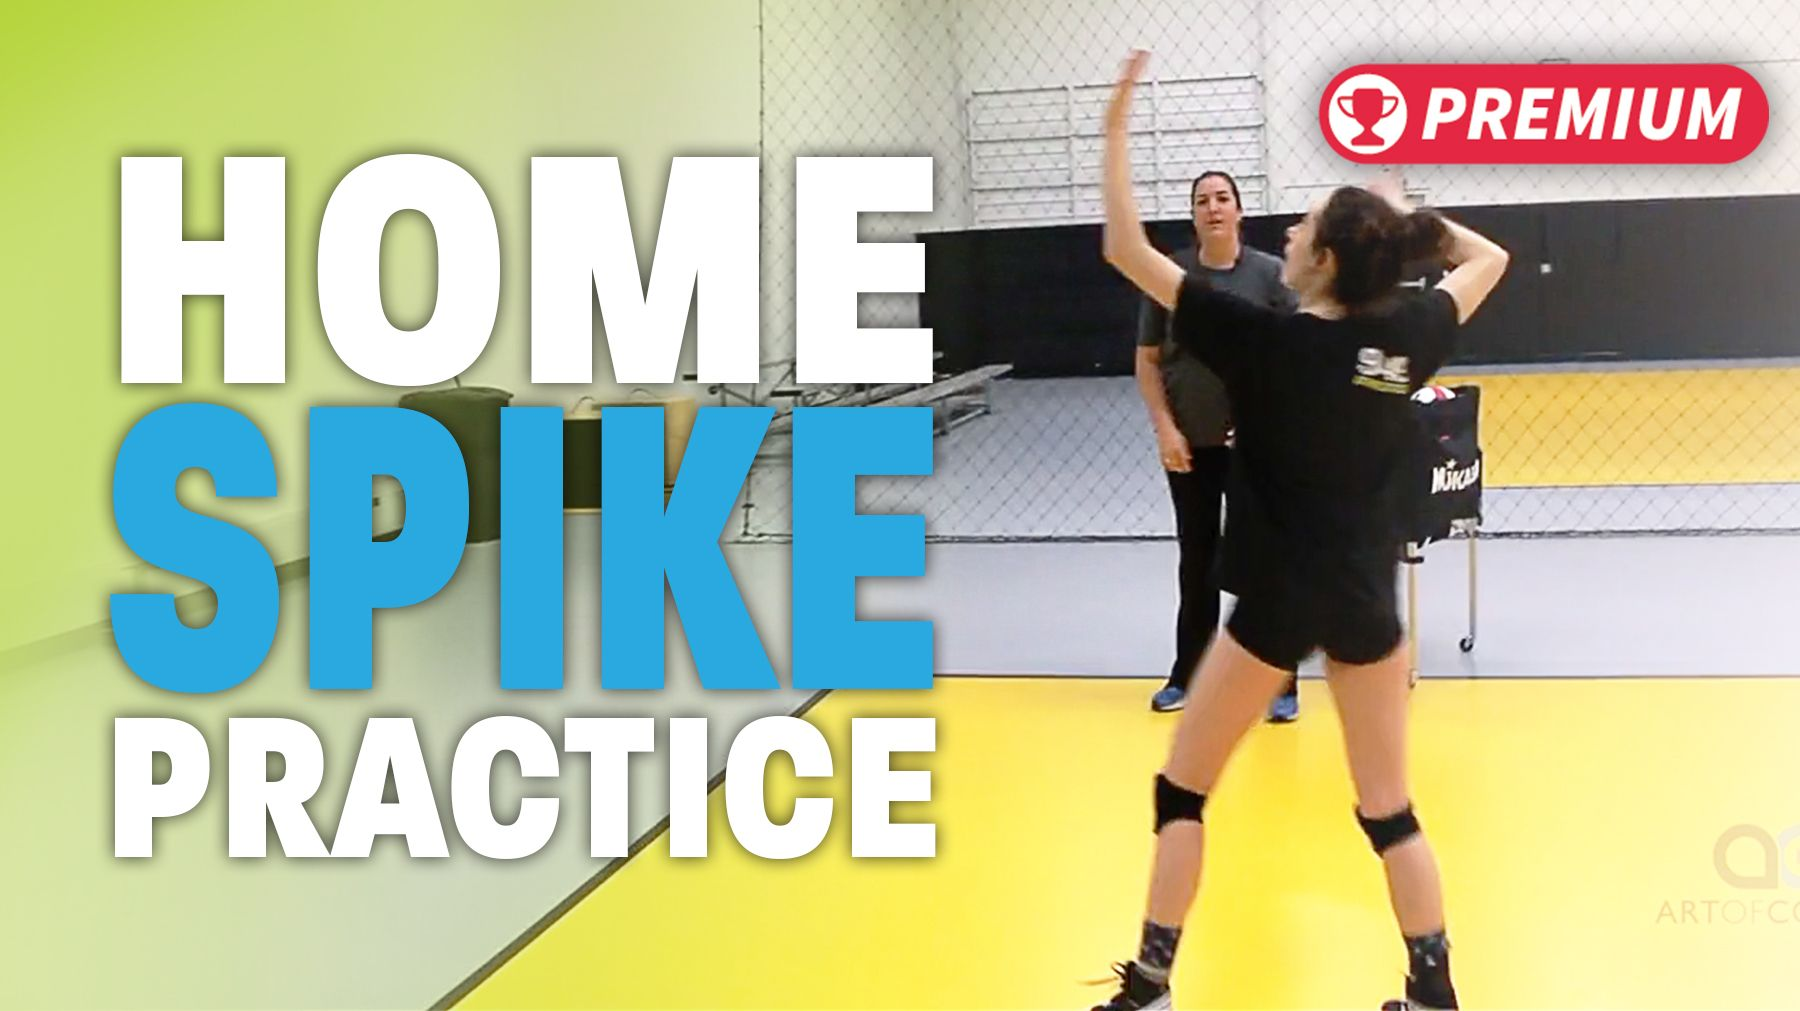 Cary Wallin Home Spiking Practice The Art Of Coaching Volleyball Coaching Volleyball Volleyball Workouts Volleyball Practice